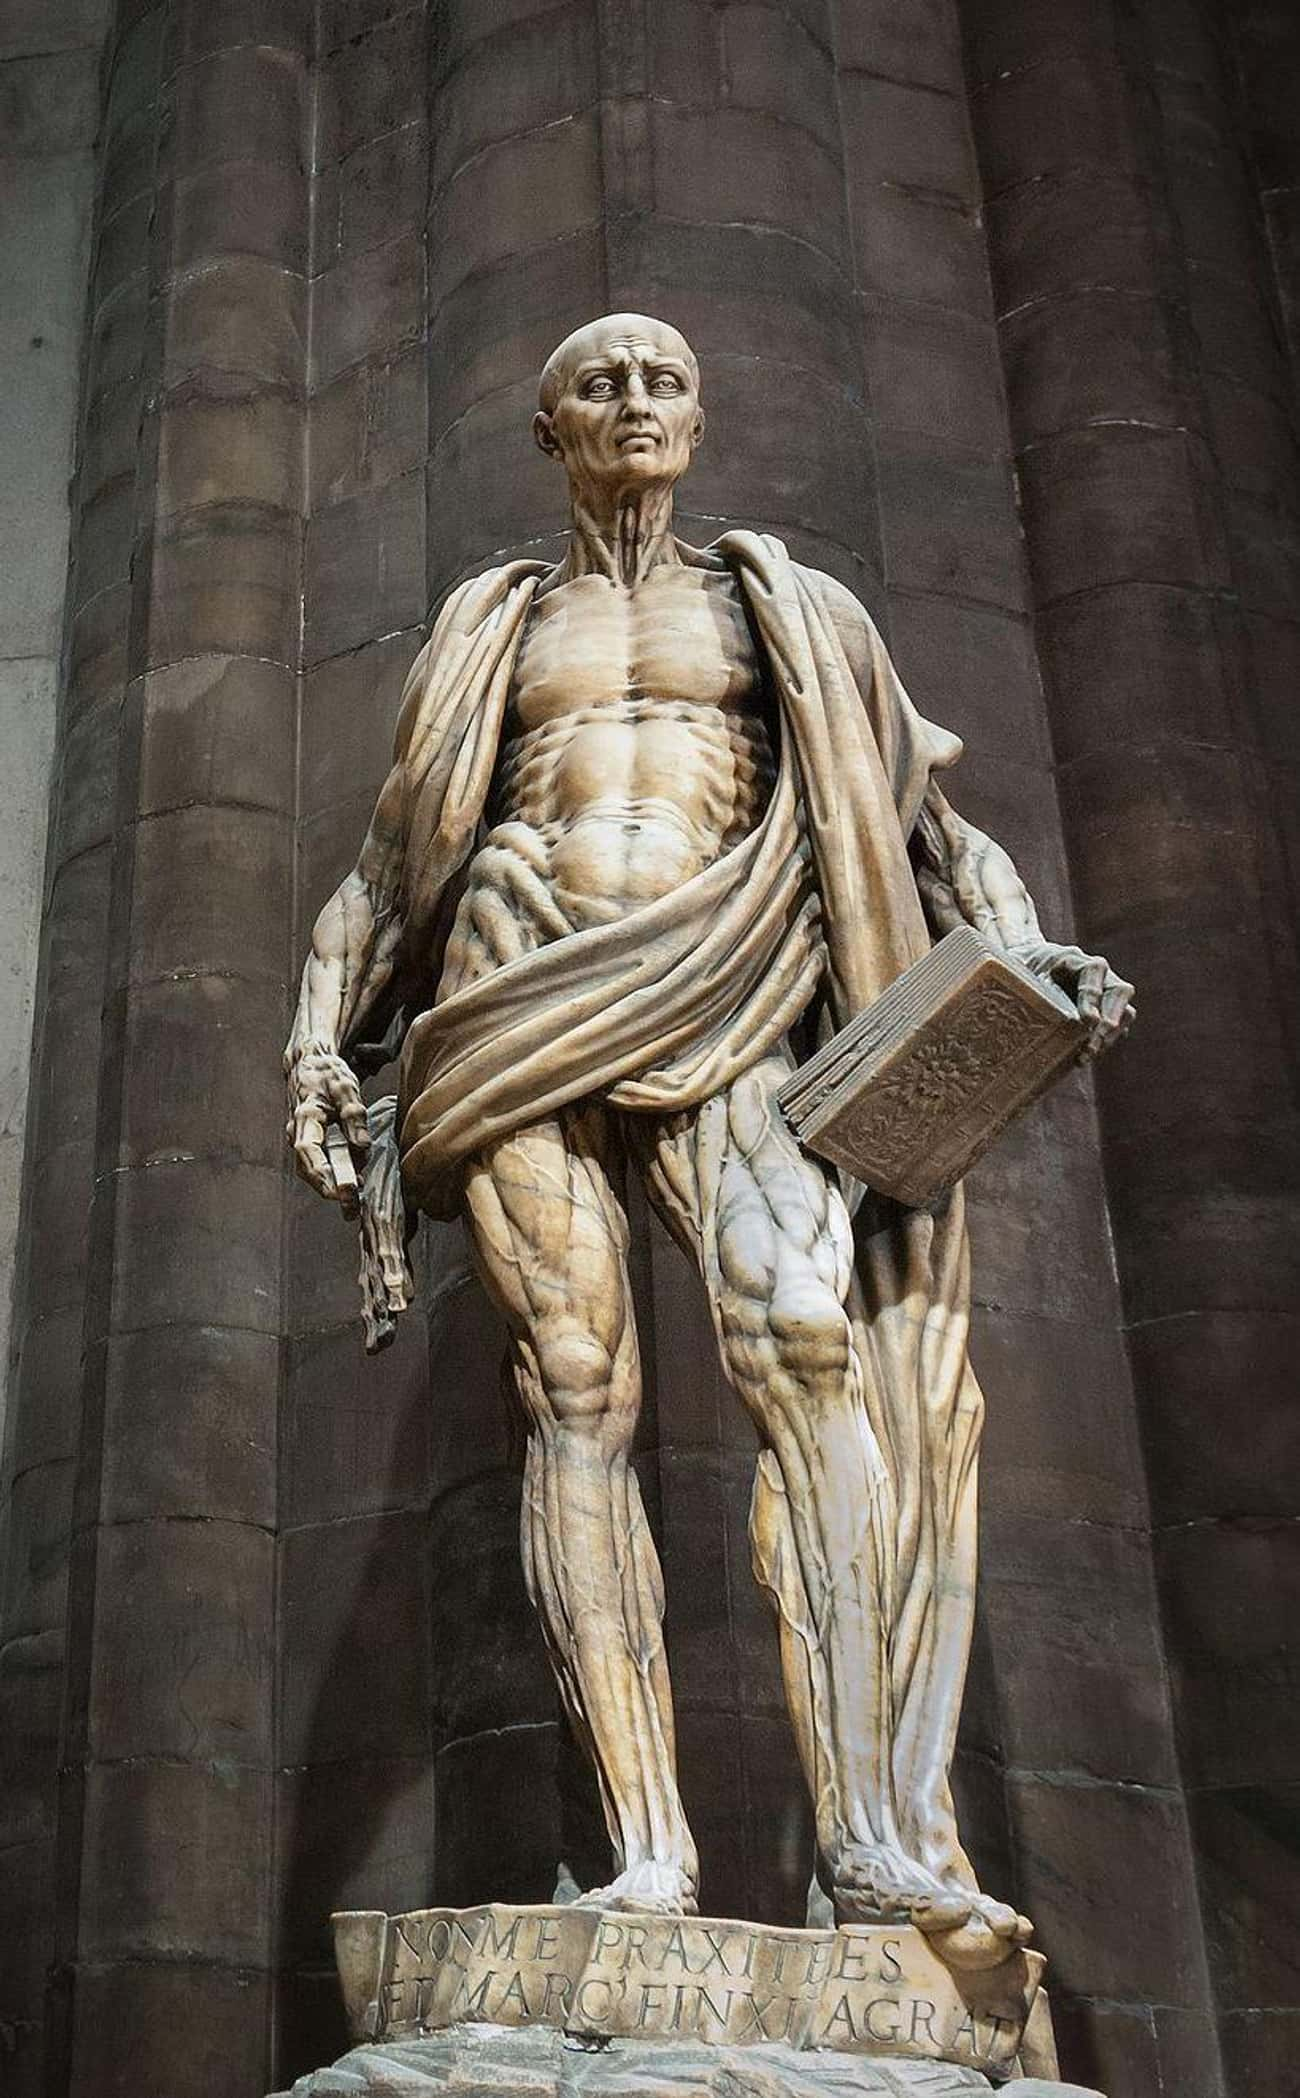 St. Bartholomew's Statue Is Dr is listed (or ranked) 1 on the list Why Is There A 450-Year-Old Catholic Statue Of A Flayed Saint In The Middle Of Milan?